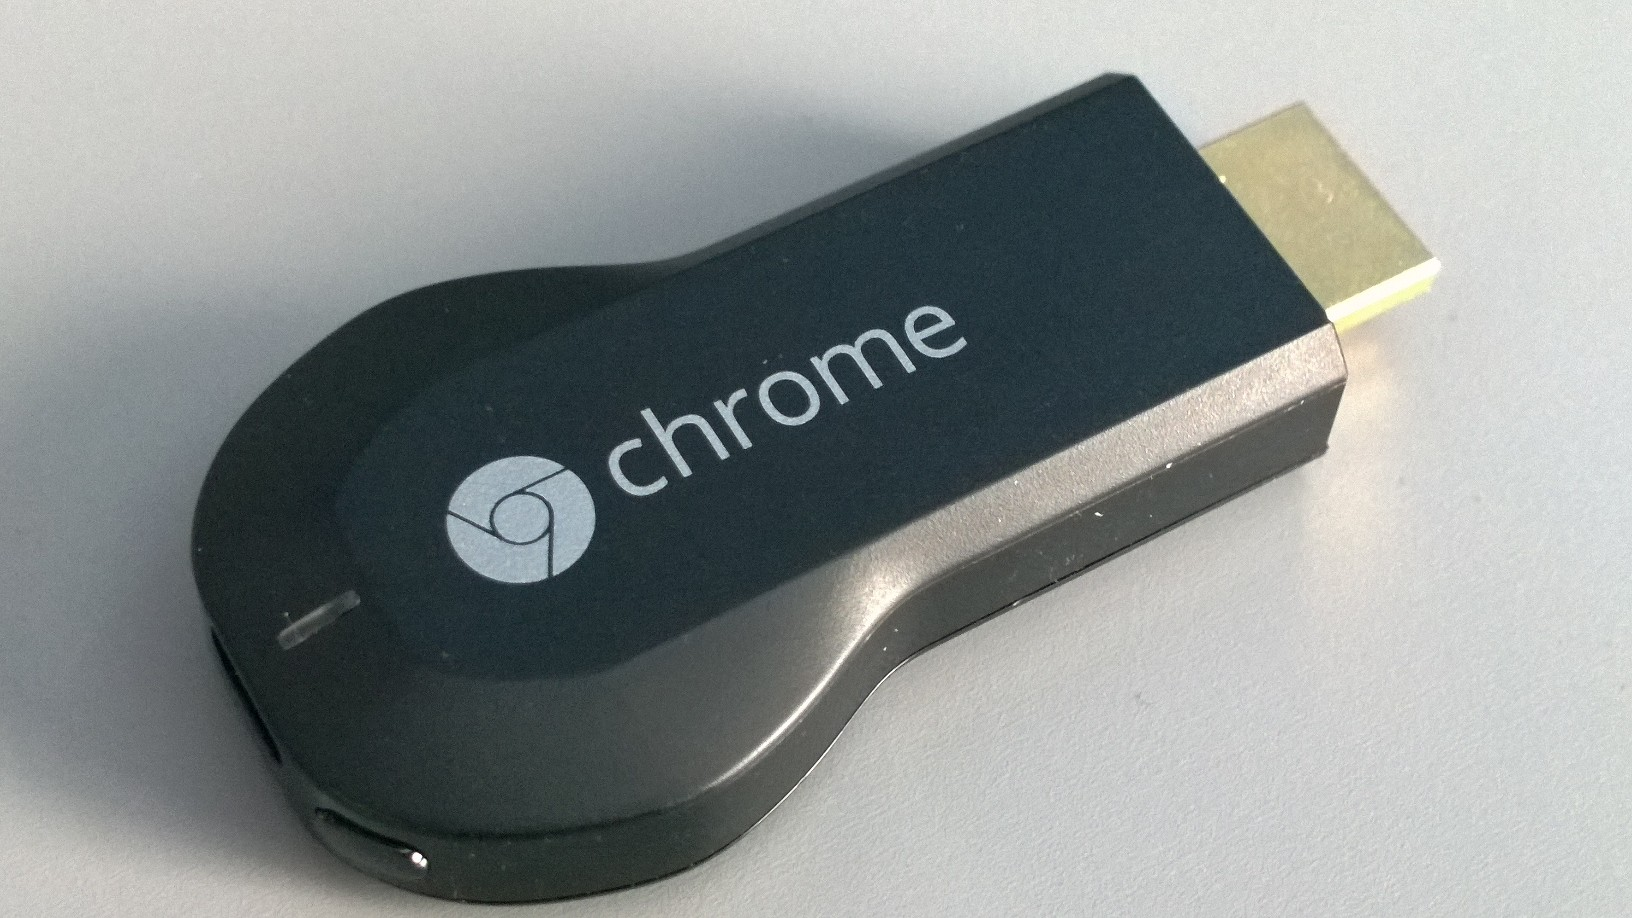 Chromecast supporting 10 new apps, Plex and Avia media streaming! – SomeGadgetGuy